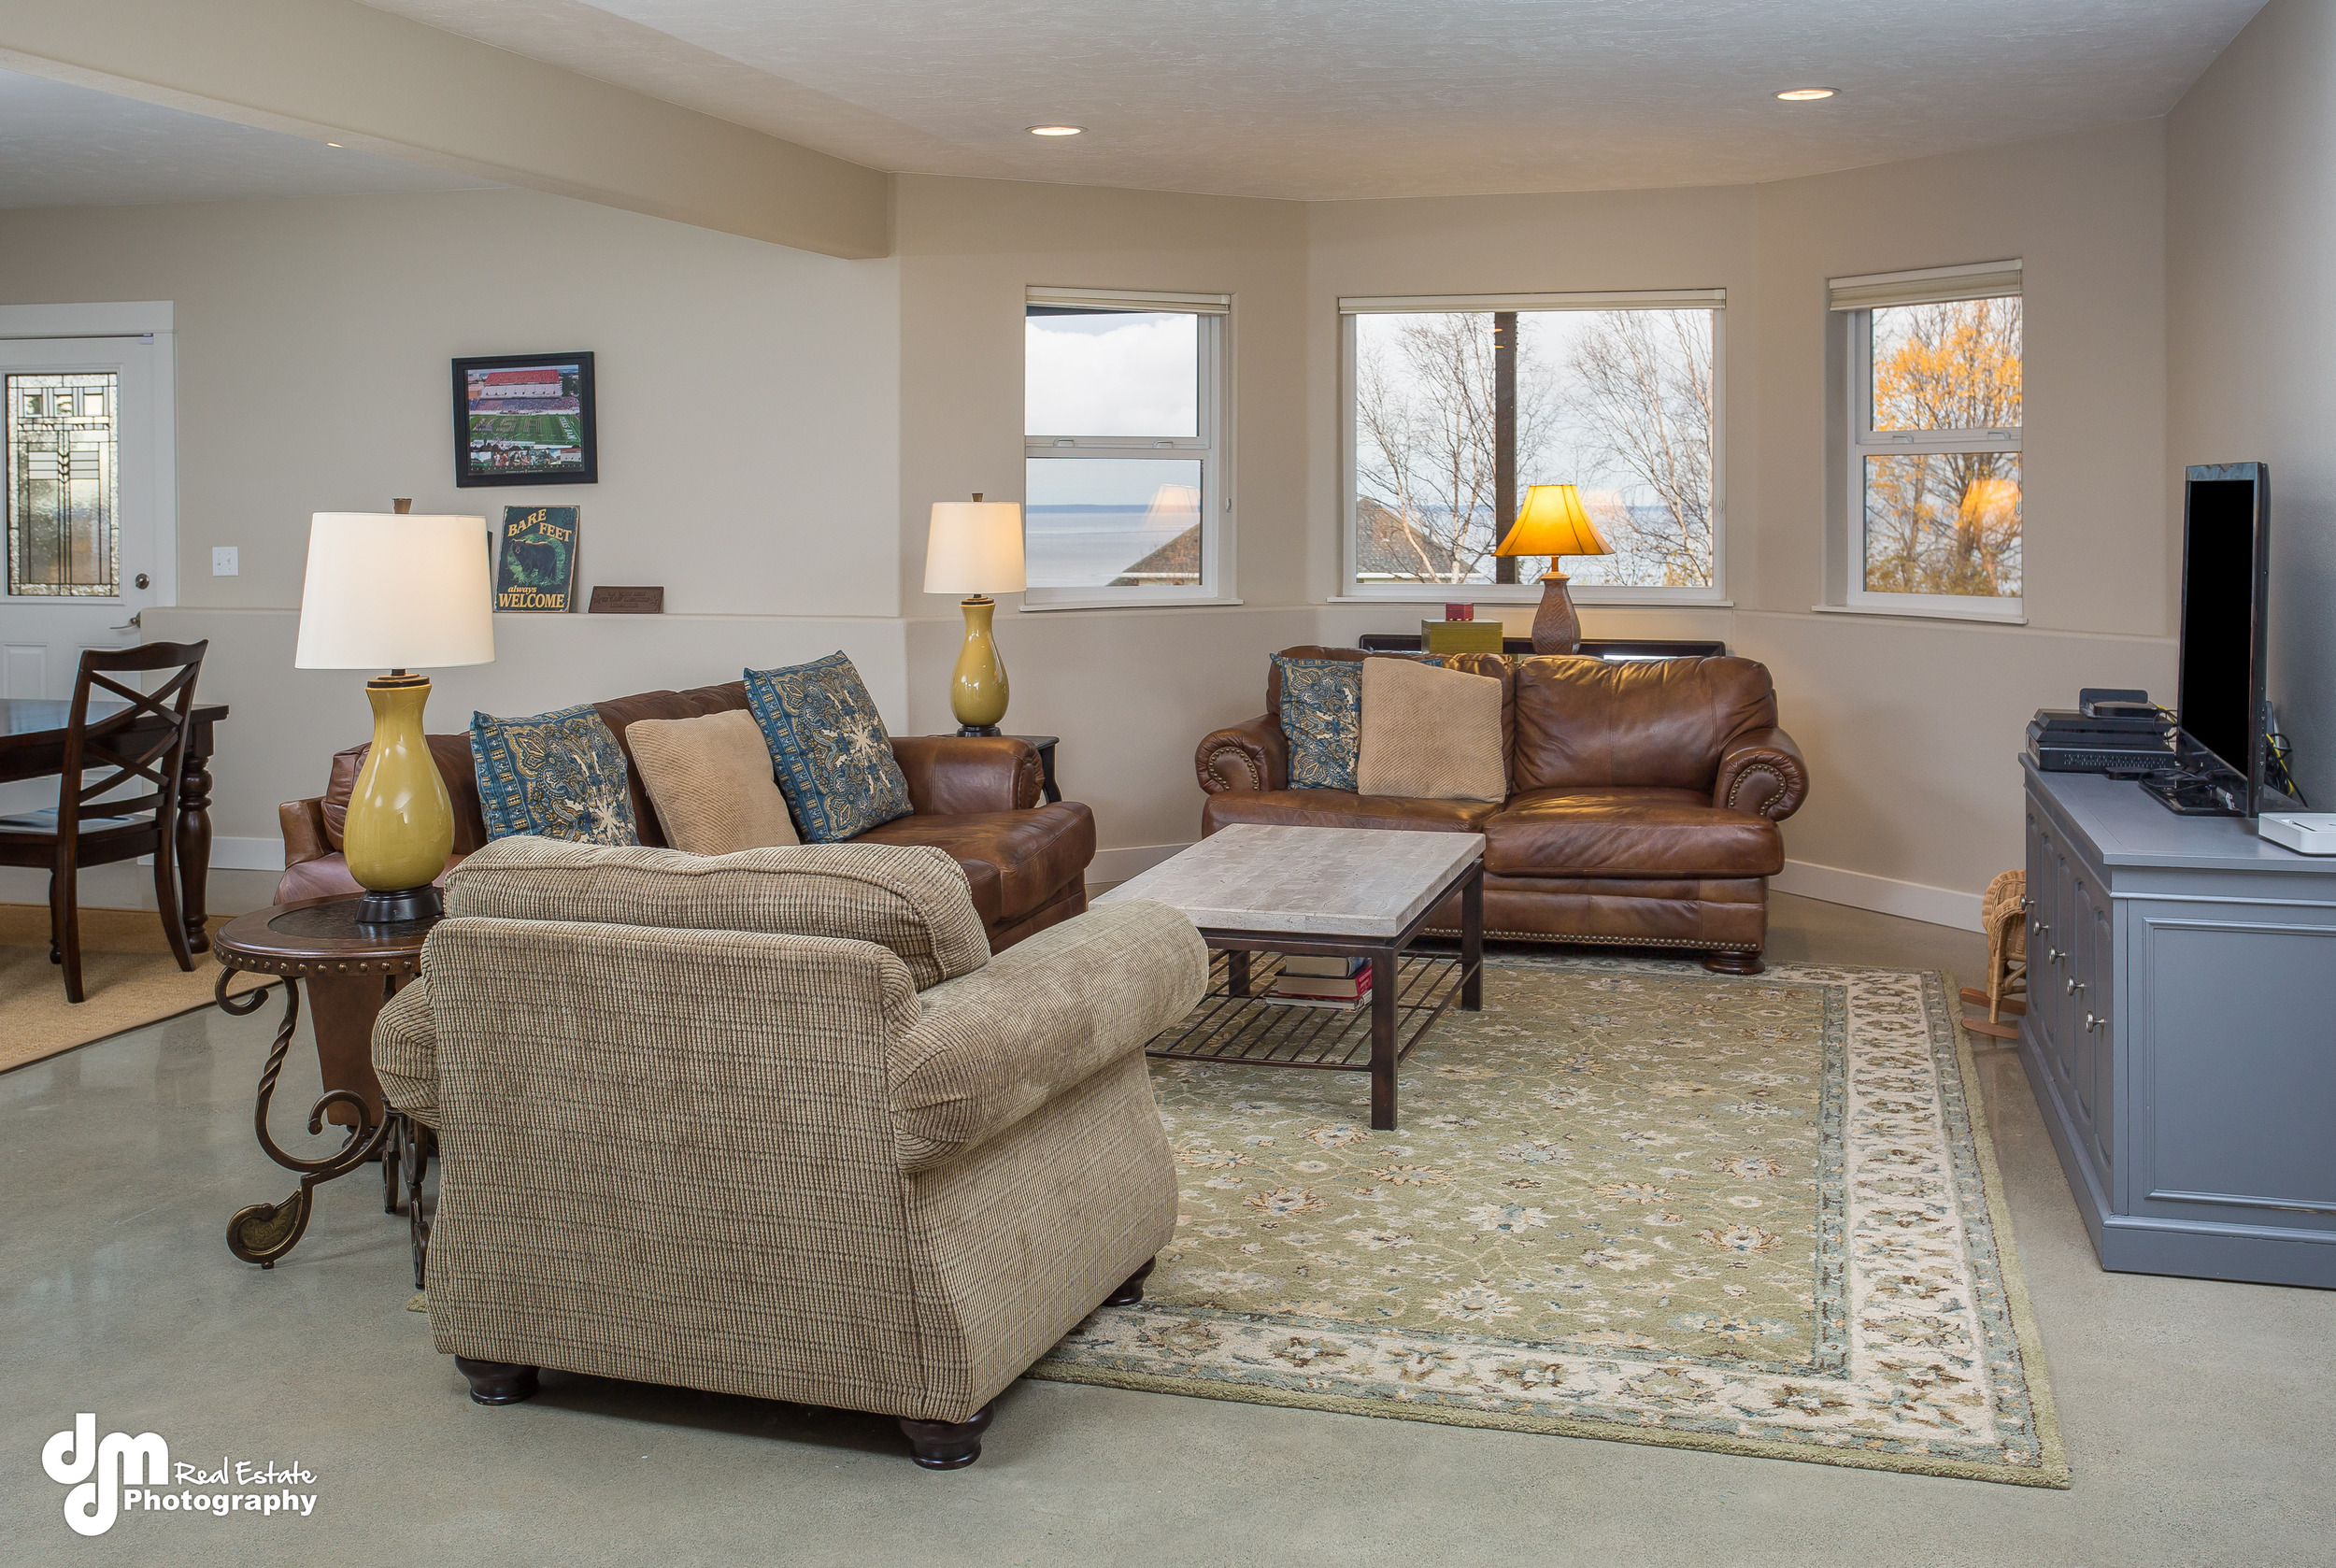 DMD_Six Cleaning Tips to Prepare a House for Real Estate Photos - Image 2.jpg